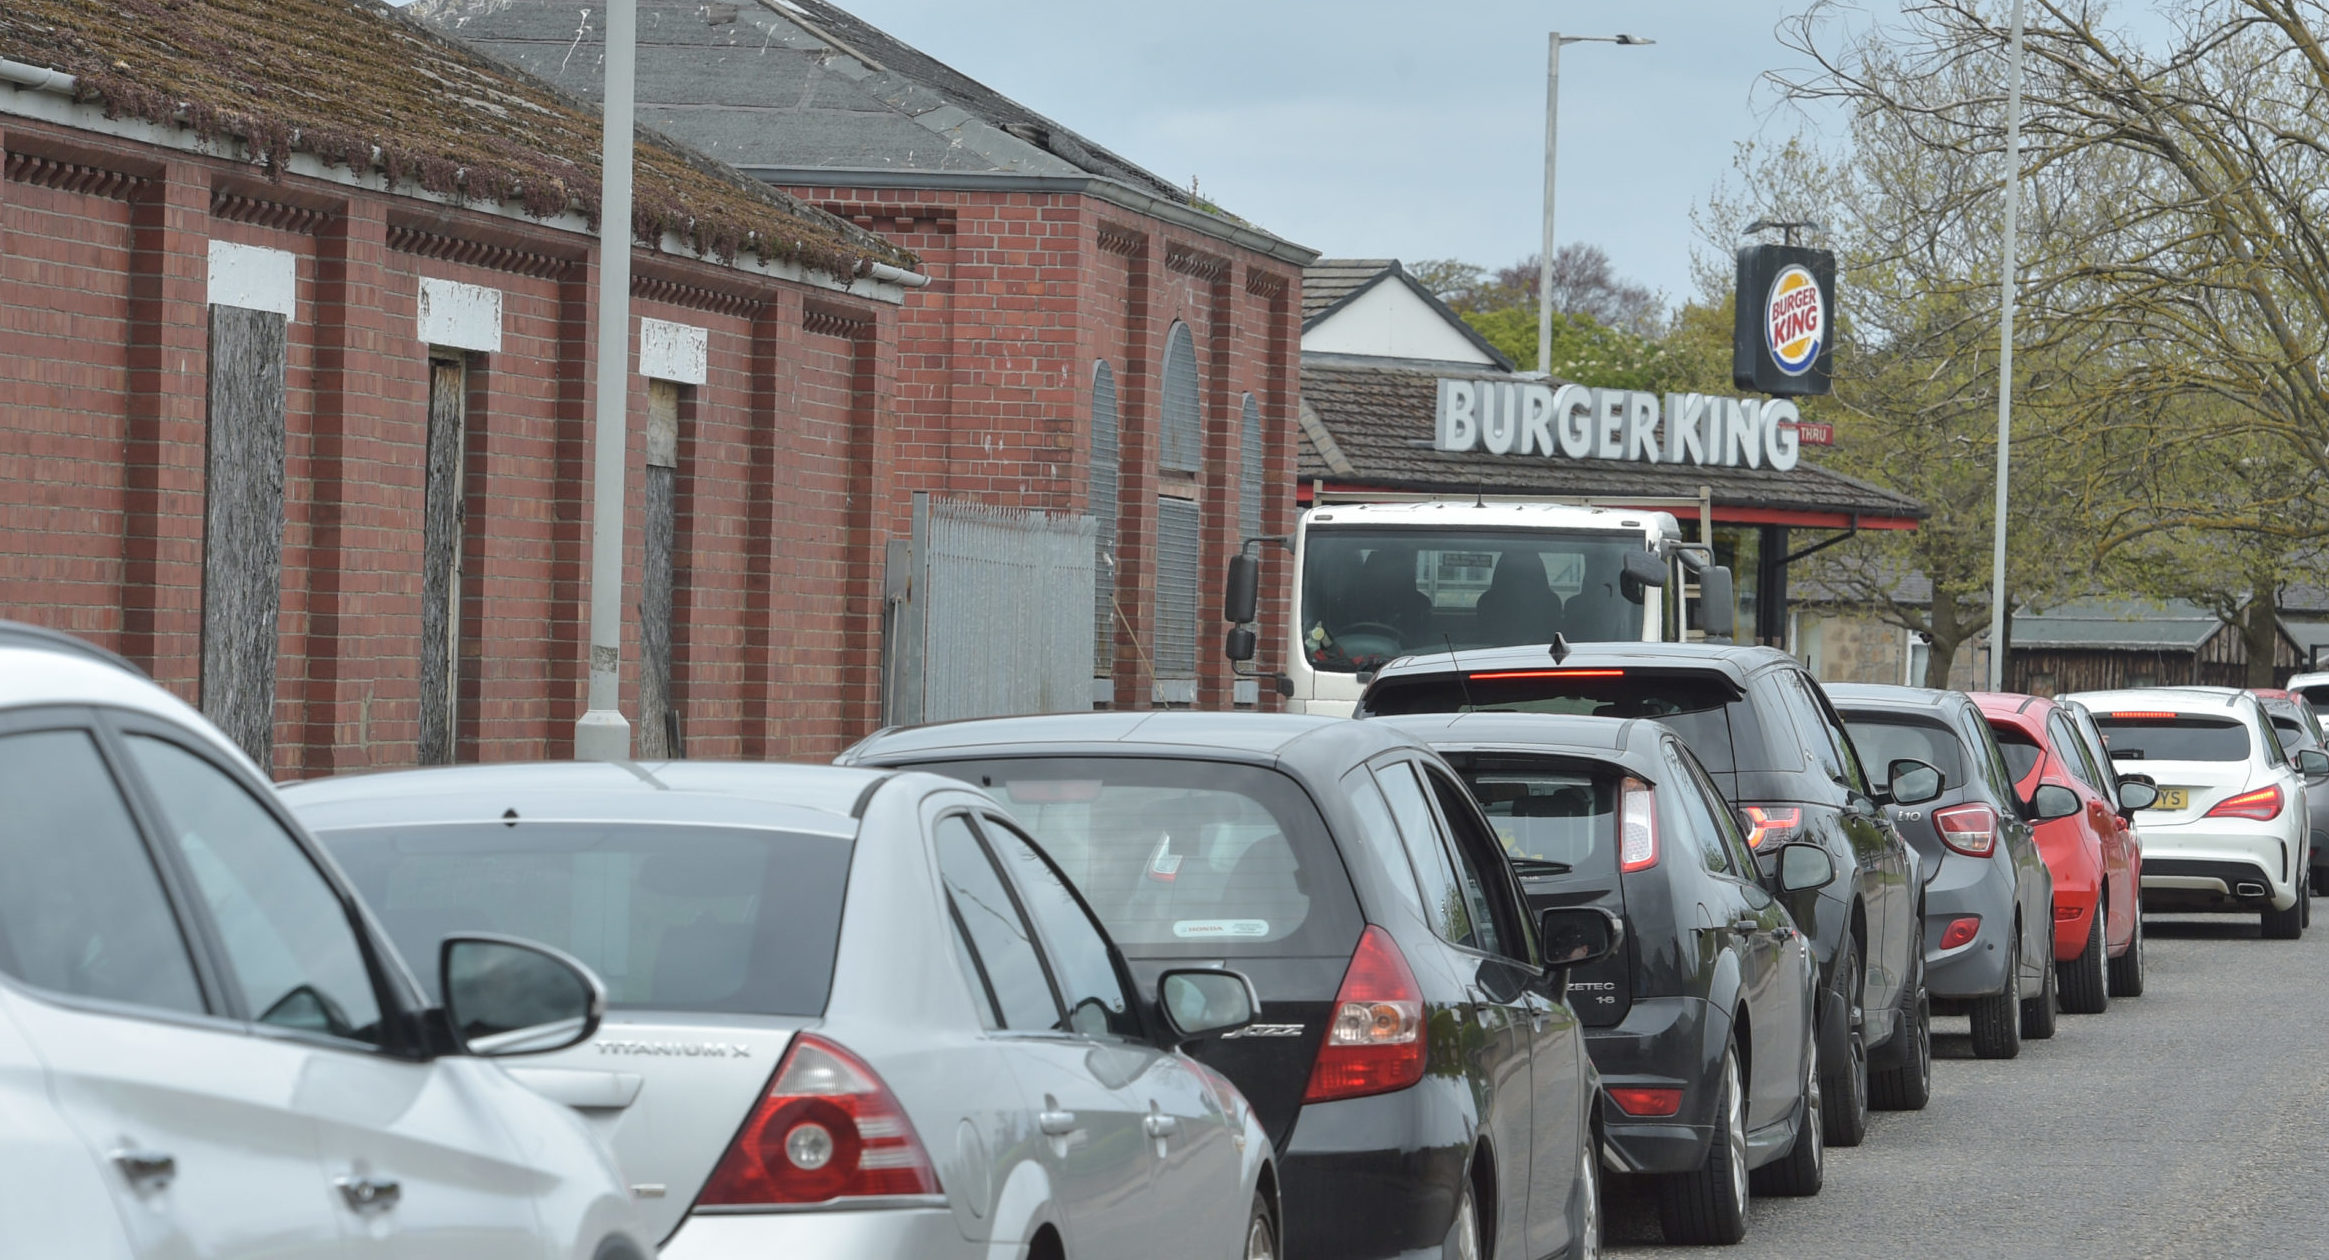 The scene in Elgin when Burger King reopened during lockdown. Pictures and video by Jason Hedges.